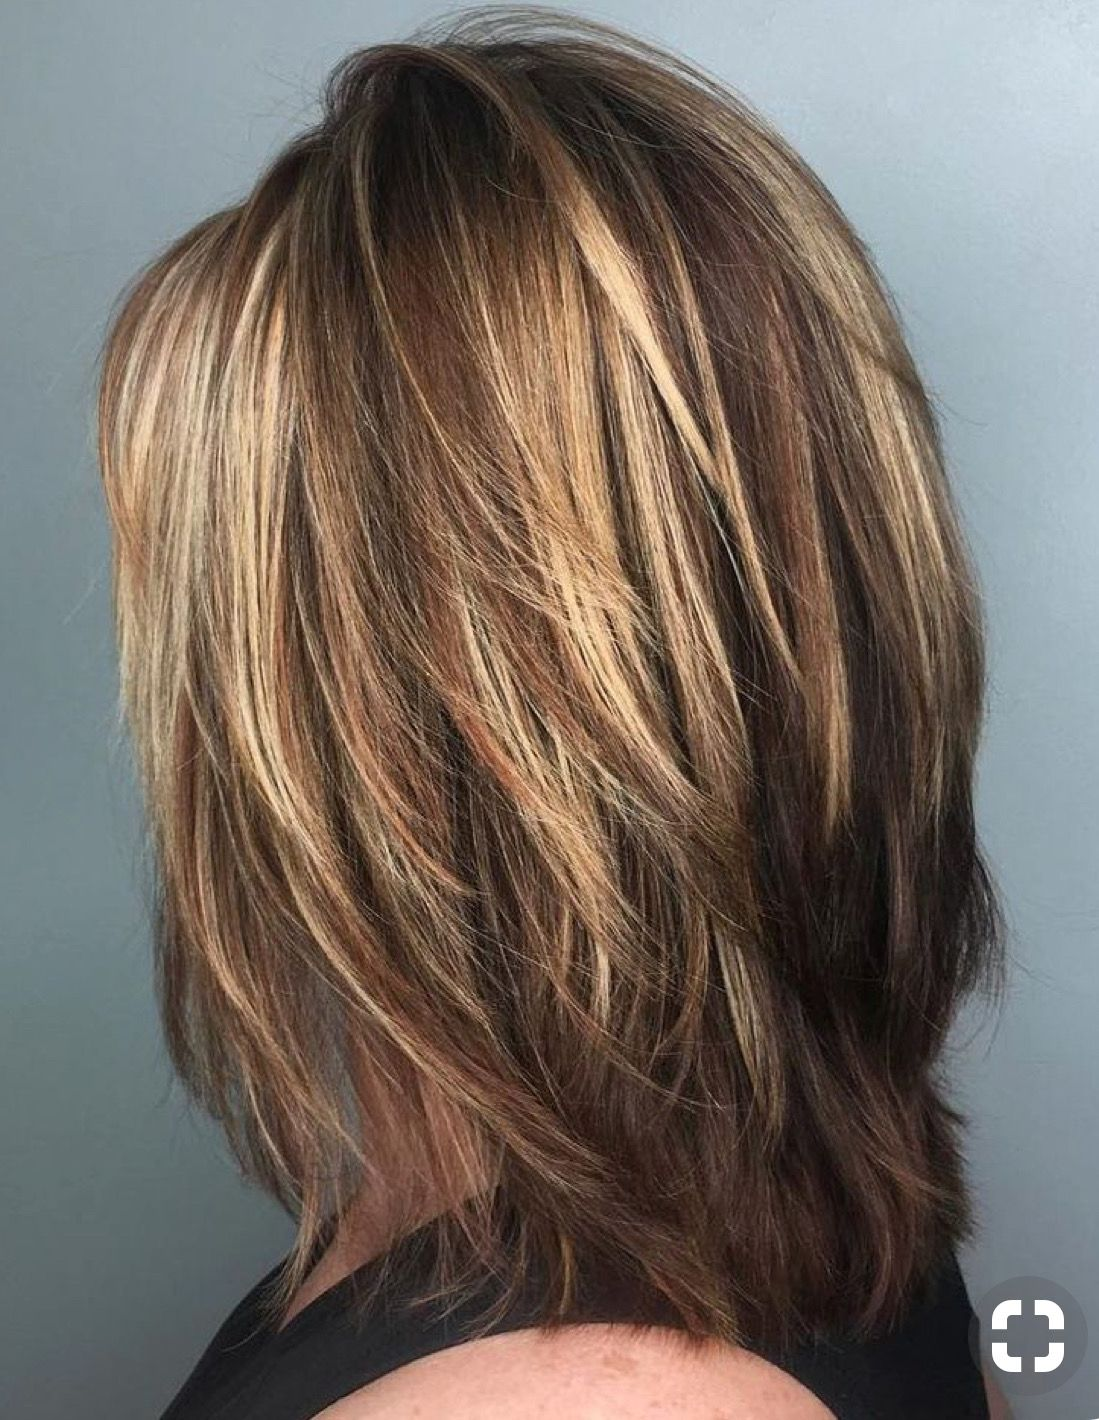 Step cutting hairstyle boy pin by angie spleiss on hair  pinterest  hair style hair cuts and